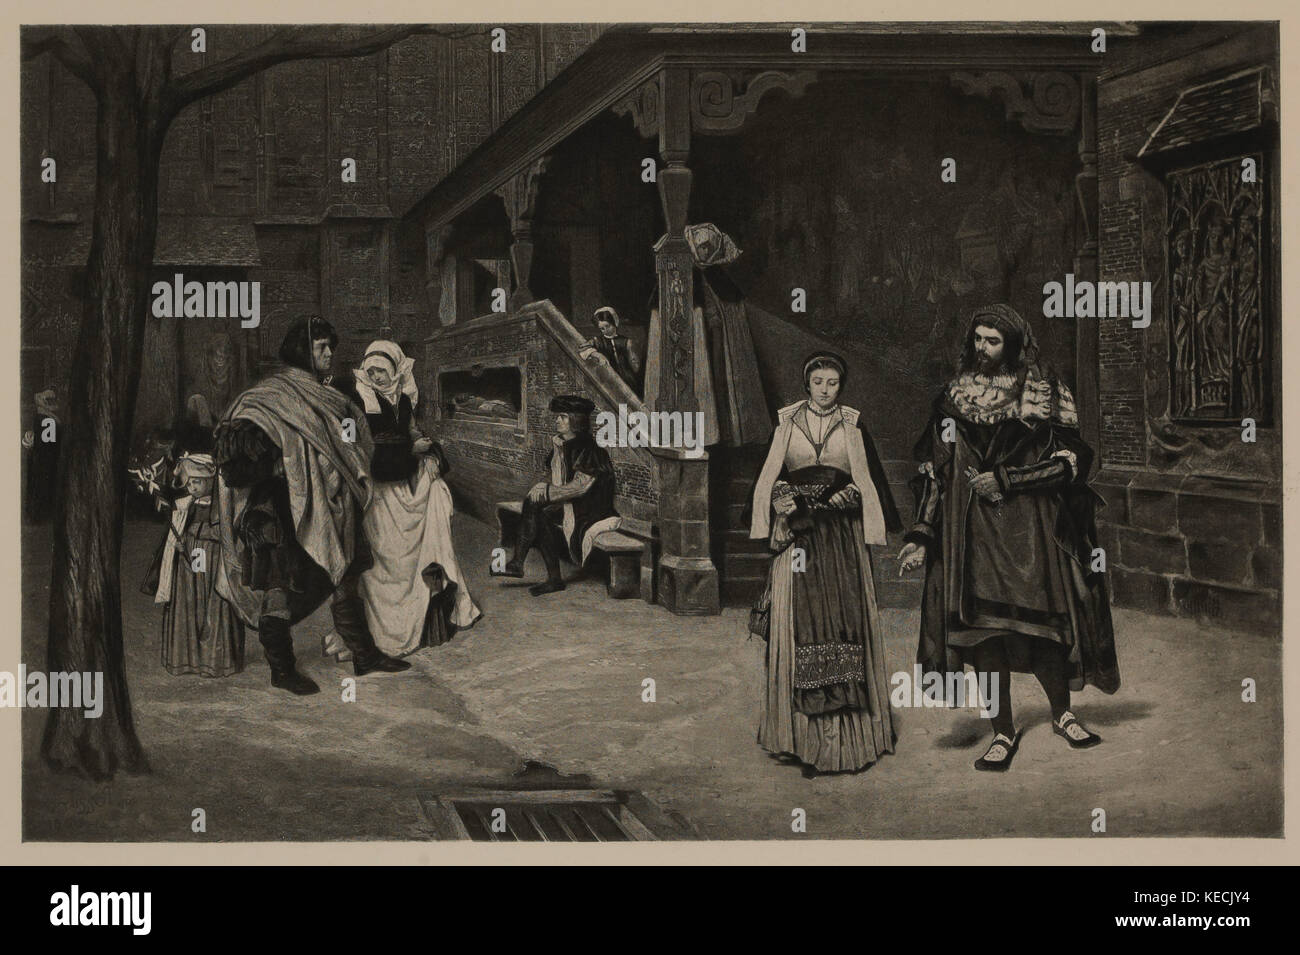 The Meeting of Faust and Marguerite, Photogravure Print from the Original 1860 Painting by James Tissot, The Masterpieces - Stock Image